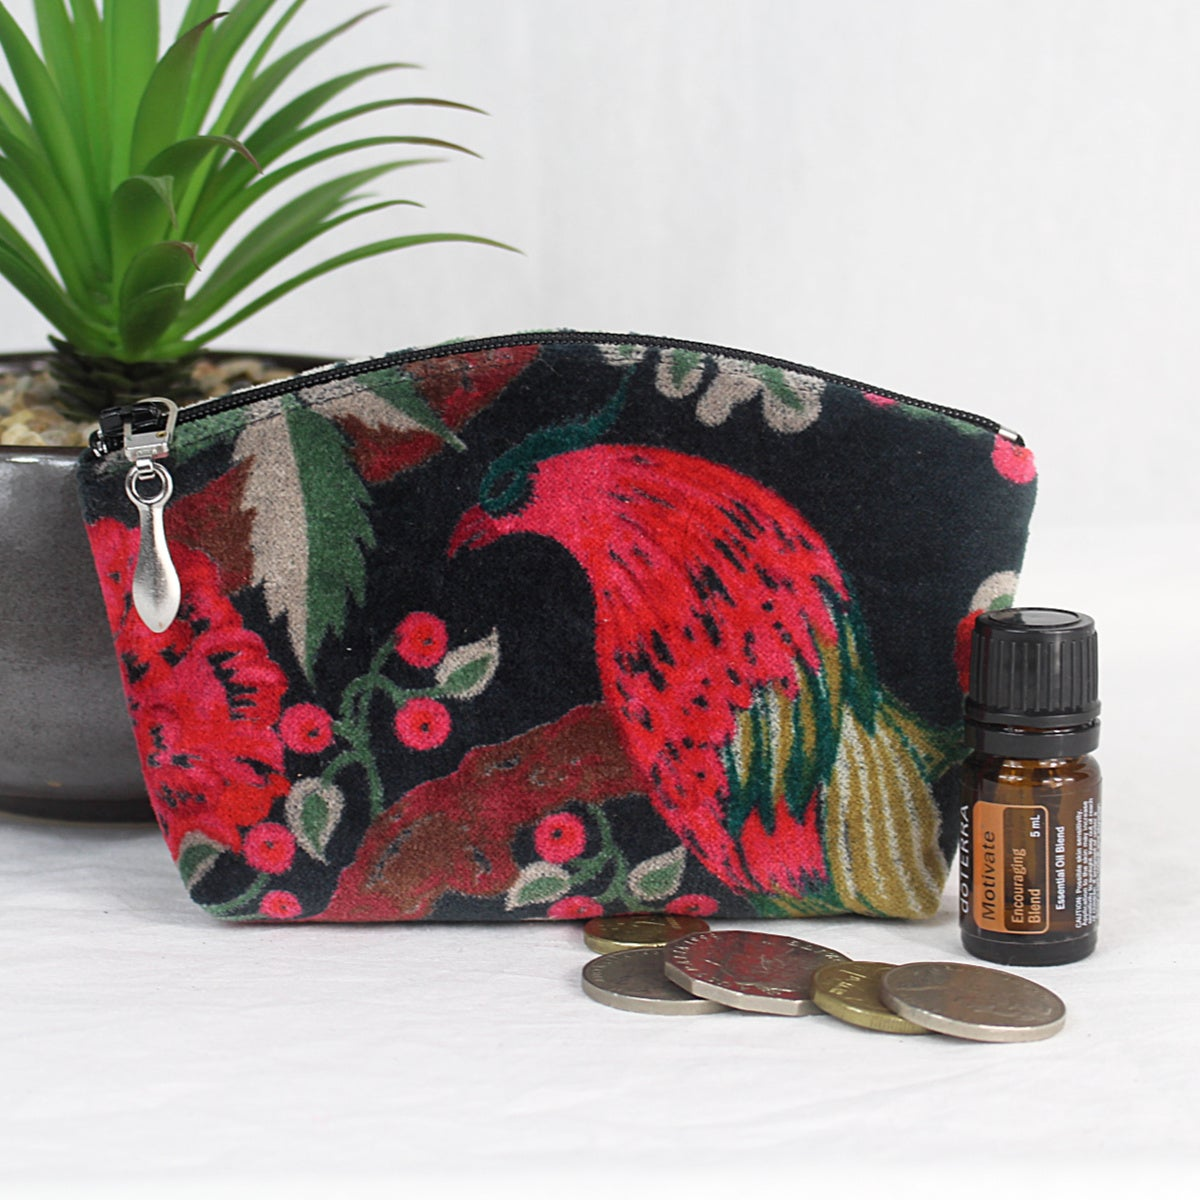 Image of Mini Velvet Curved Purse - Black Bird